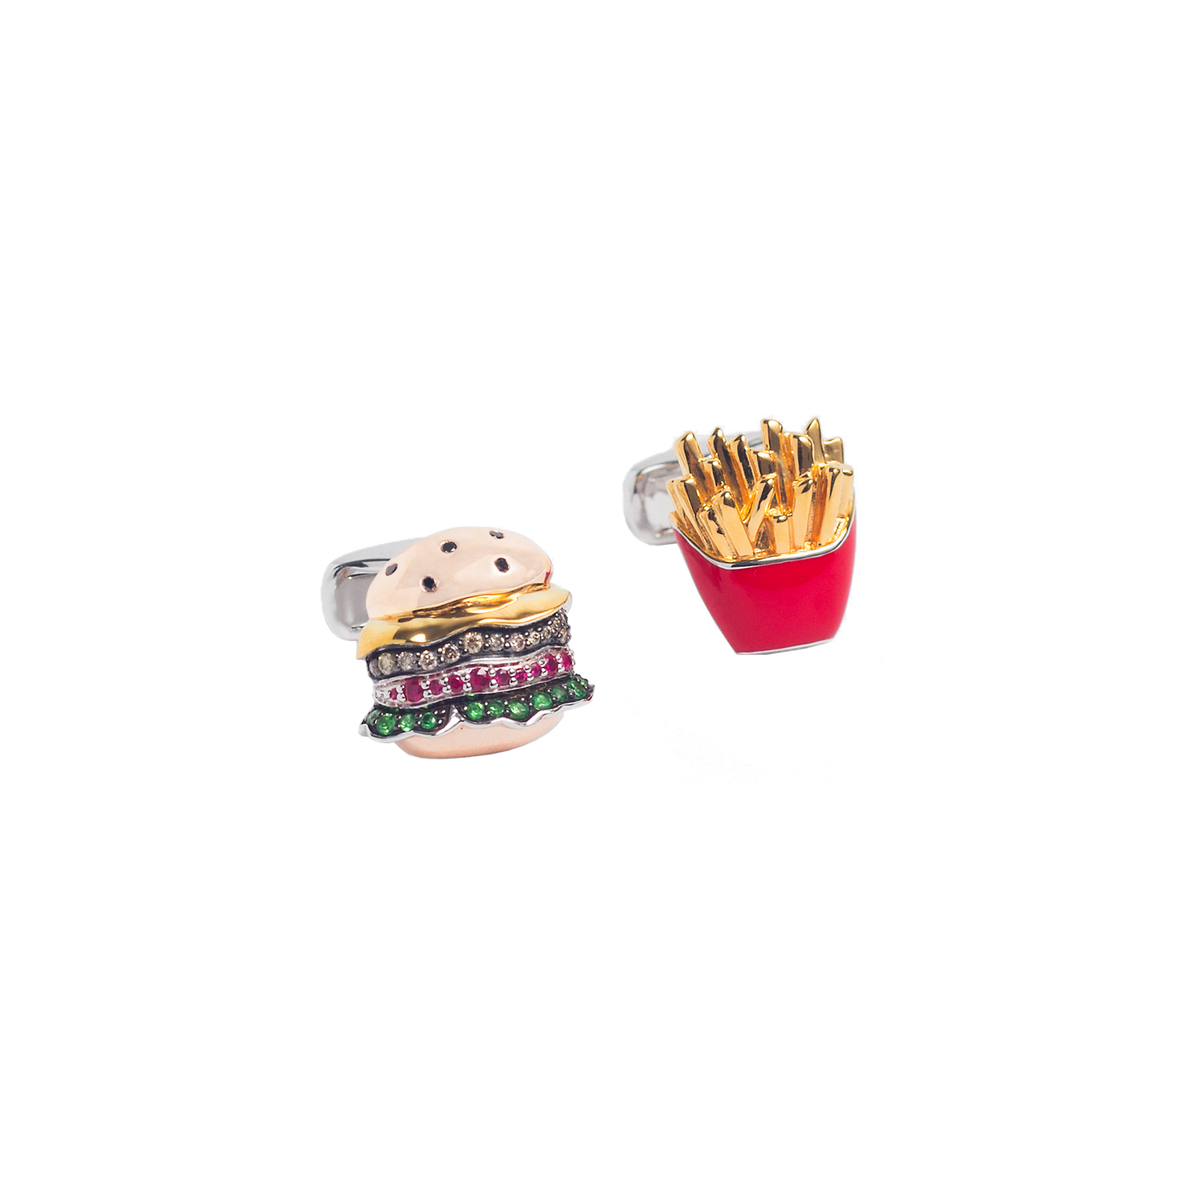 Burger & Fries Cufflinks